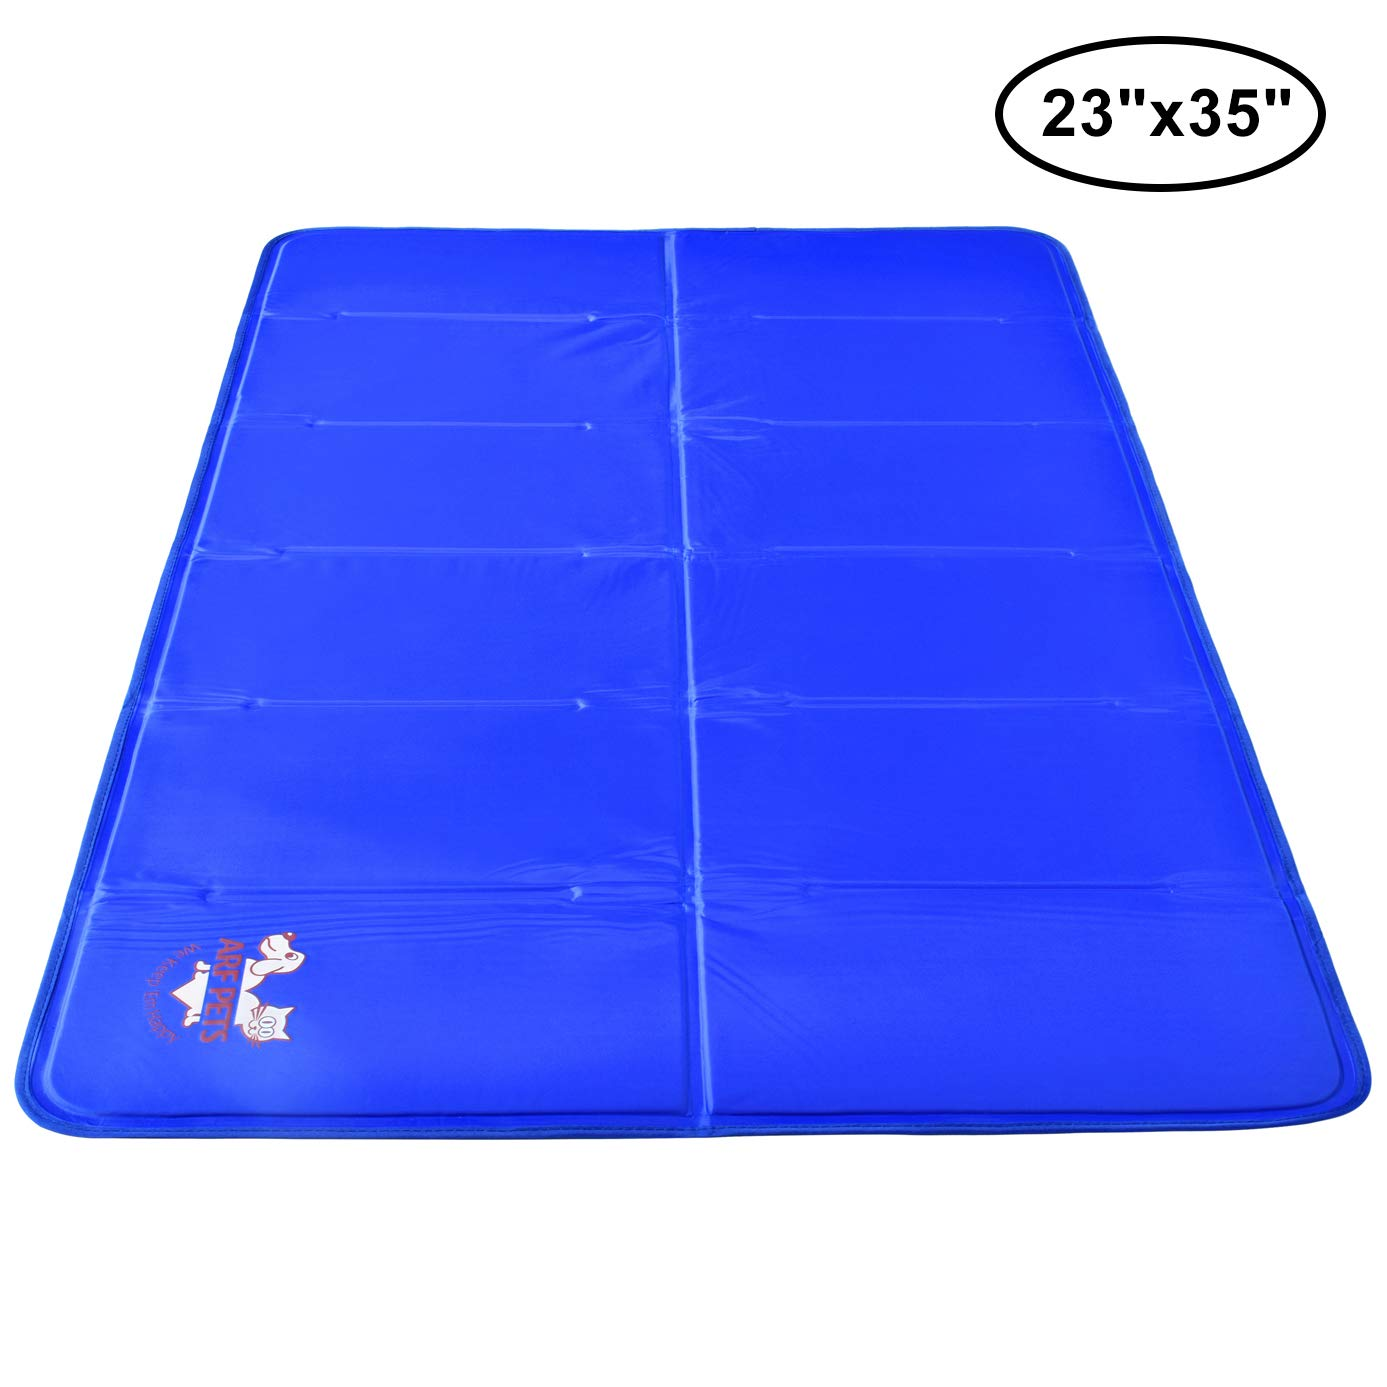 Arf Pets Pet Dog Self Cooling Mat Pad for Kennels, Crates and Beds 23x35 by Arf Pets